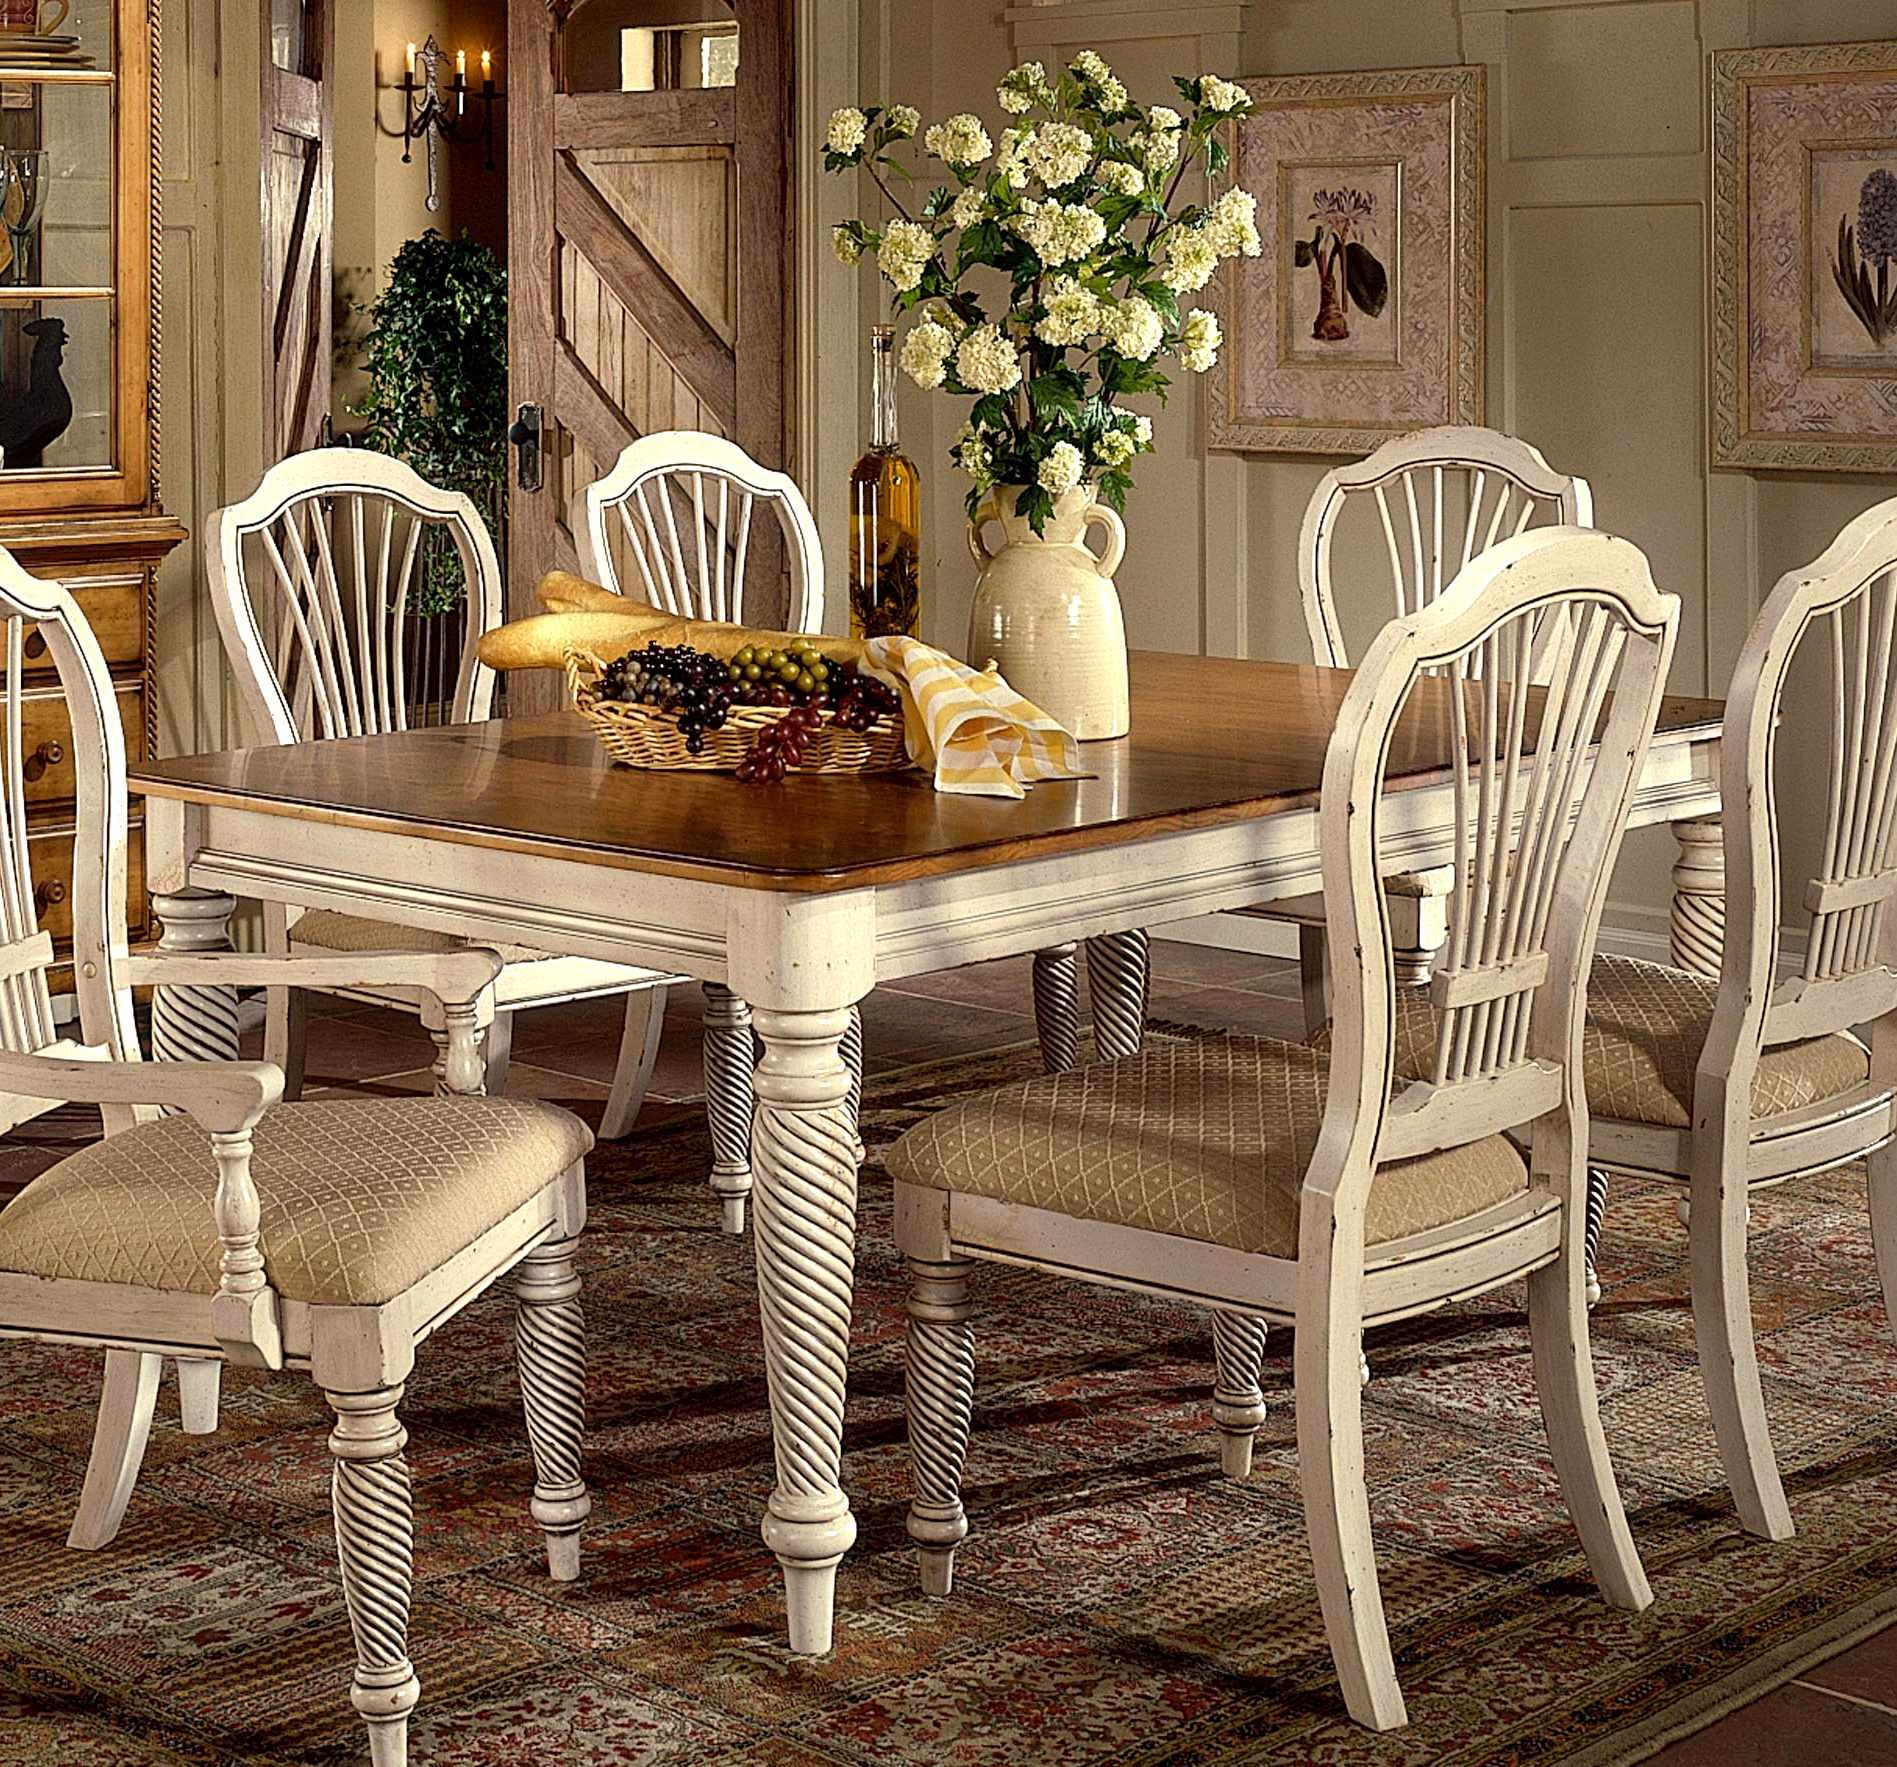 Antique Cream Dining Table For Open Plan Kitchen Diner White Dining Room Sets White Dining Set Rectangle Dining Table